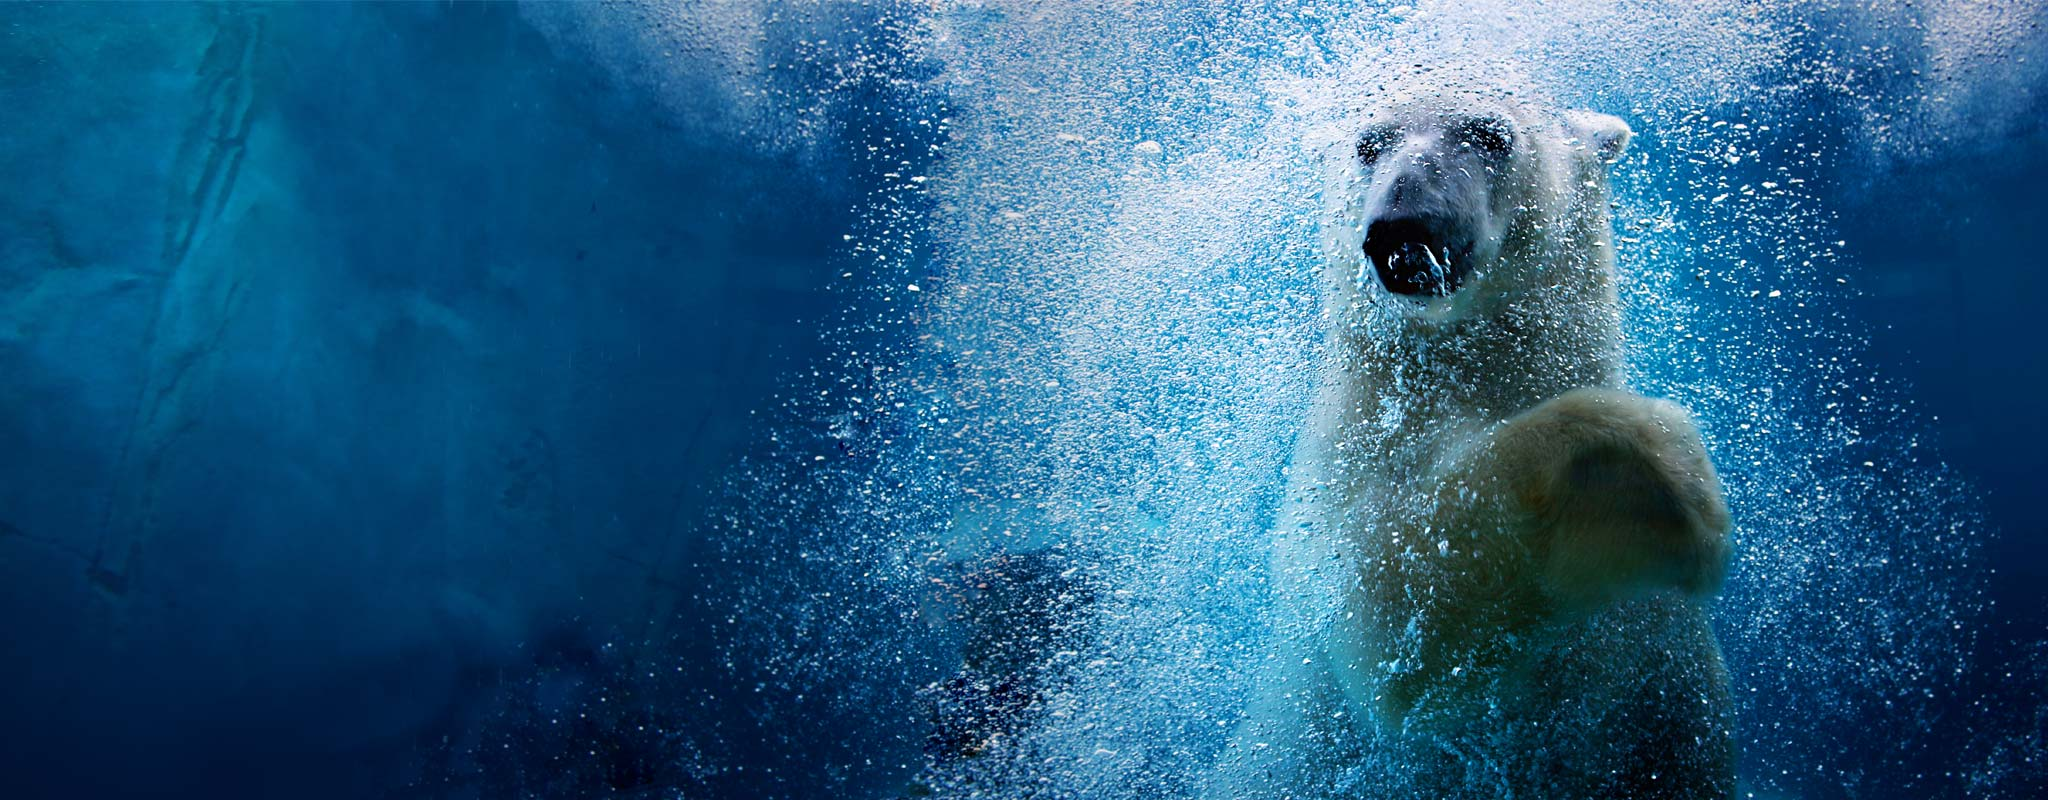 Nora the polar bear under the water at Utah's Hogle Zoo